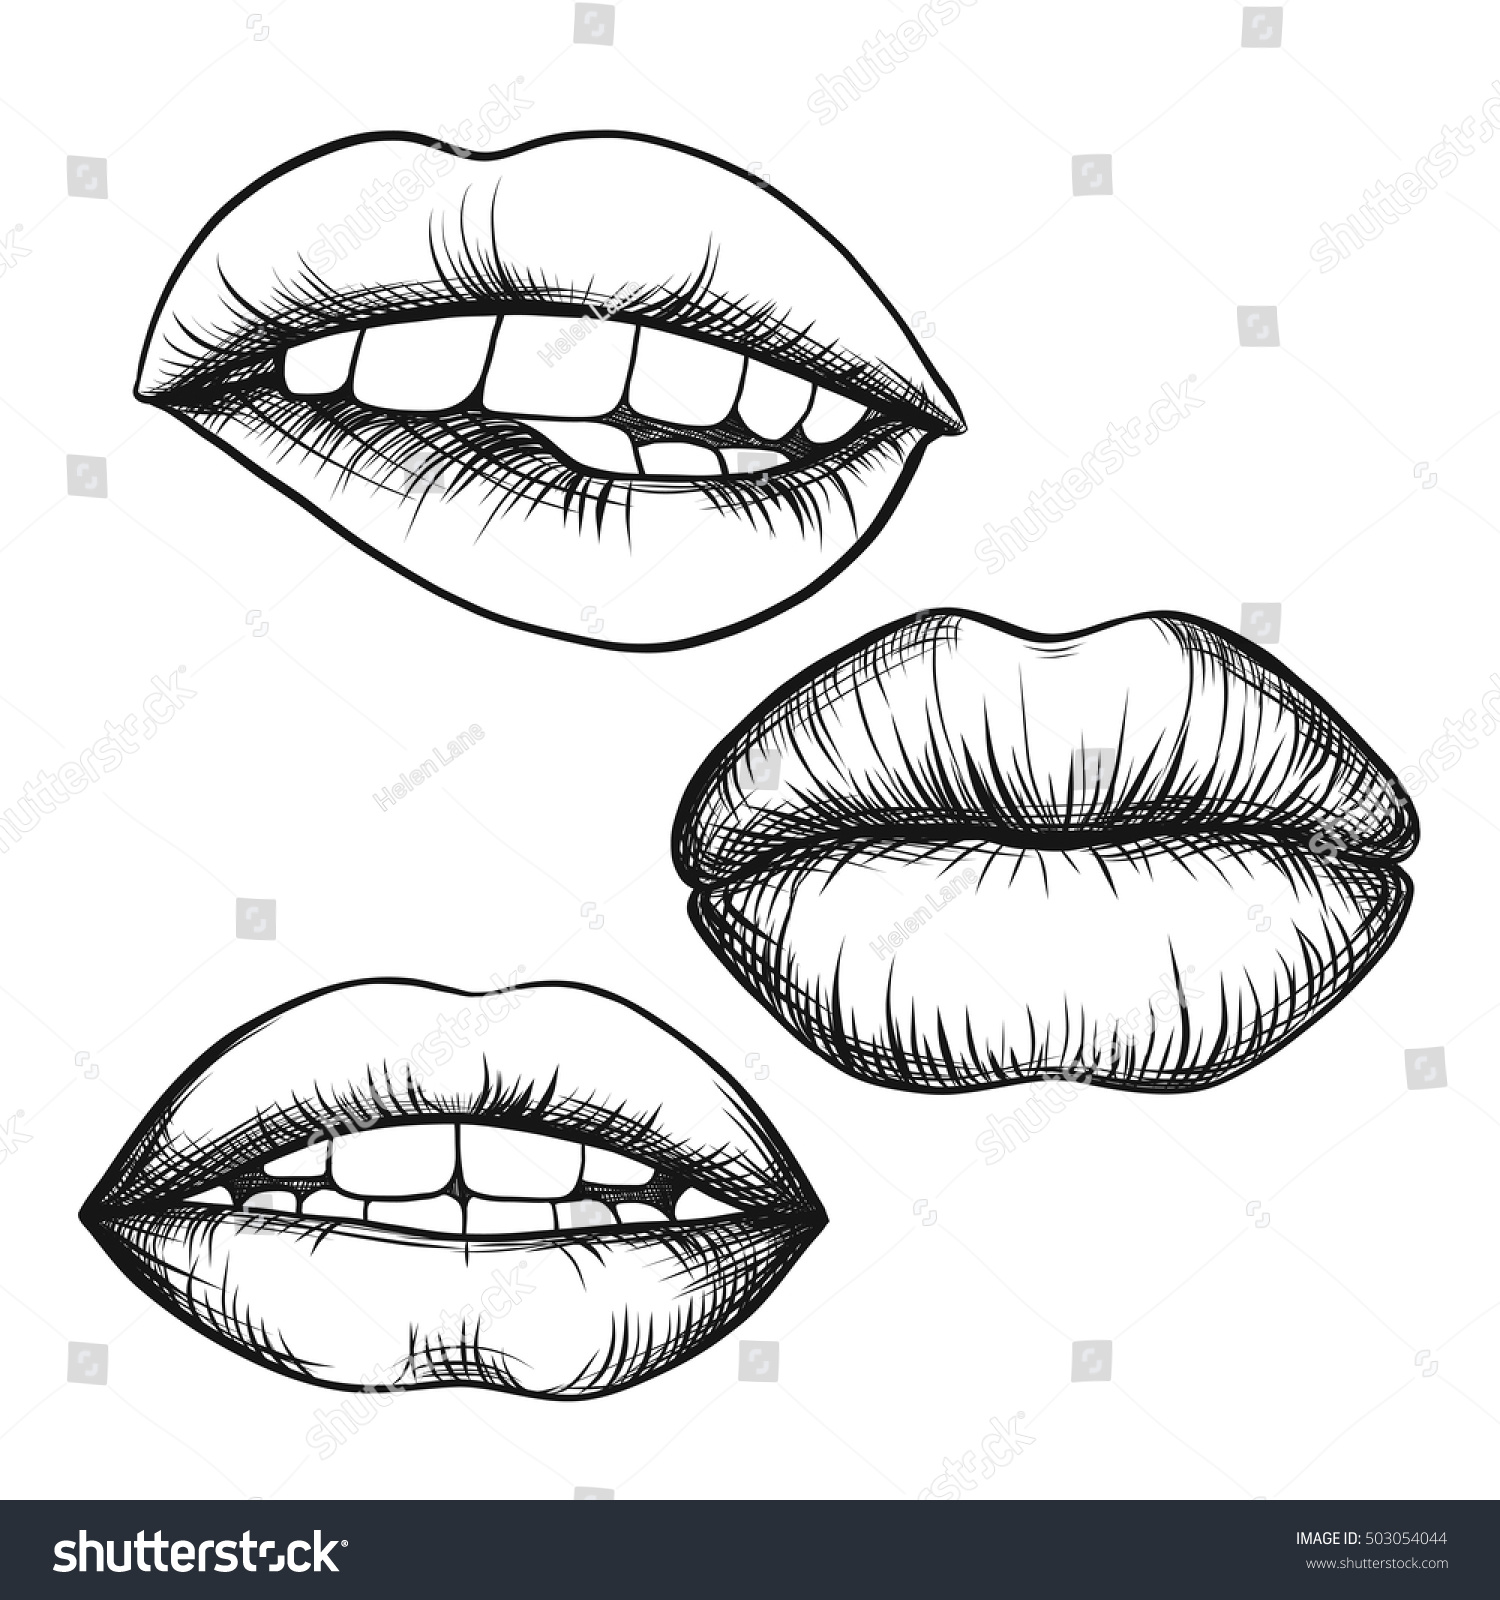 It is a picture of Stupendous Lips Outline Drawing